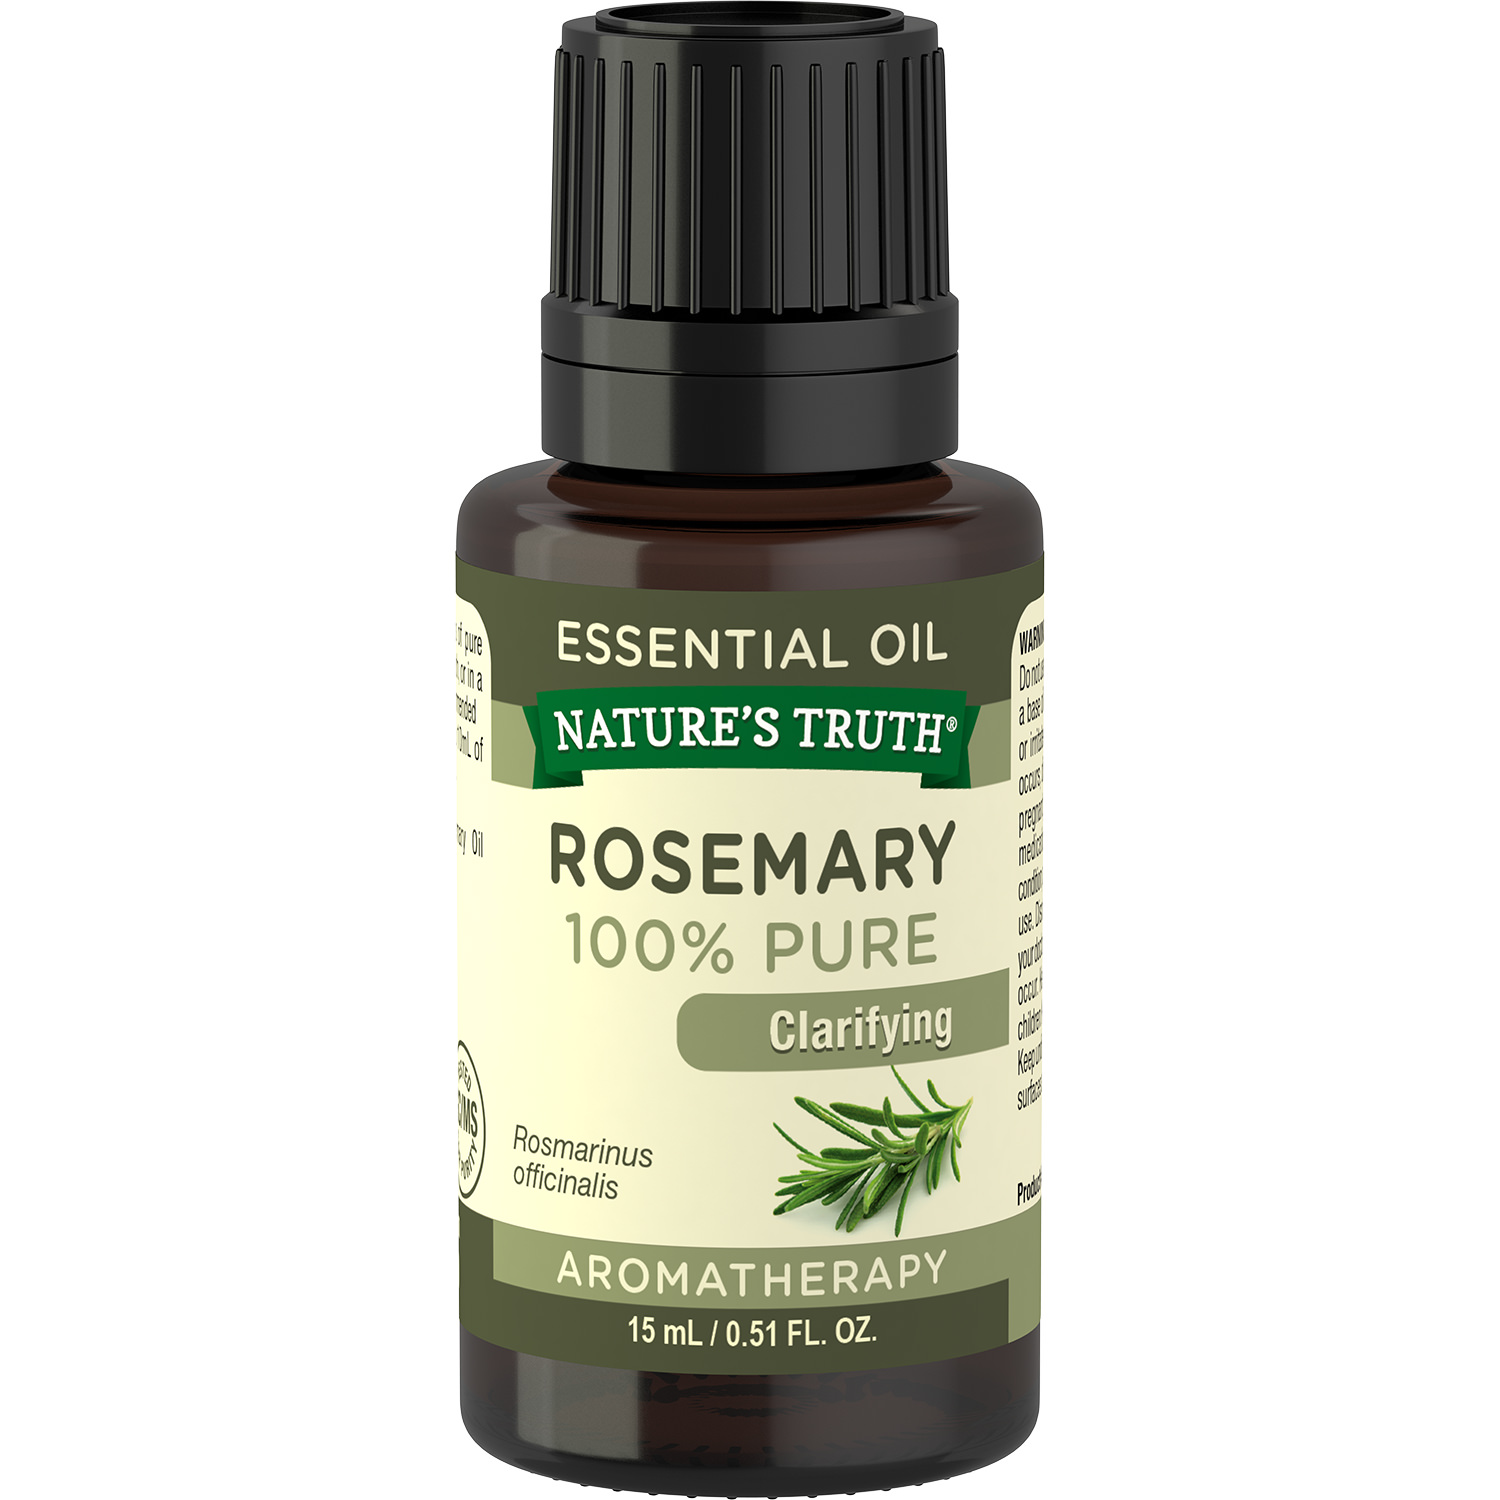 Nature's Truth Aromatherapy Rosemary 100% Pure Clarifying Essential Oil, 0.51 fl oz